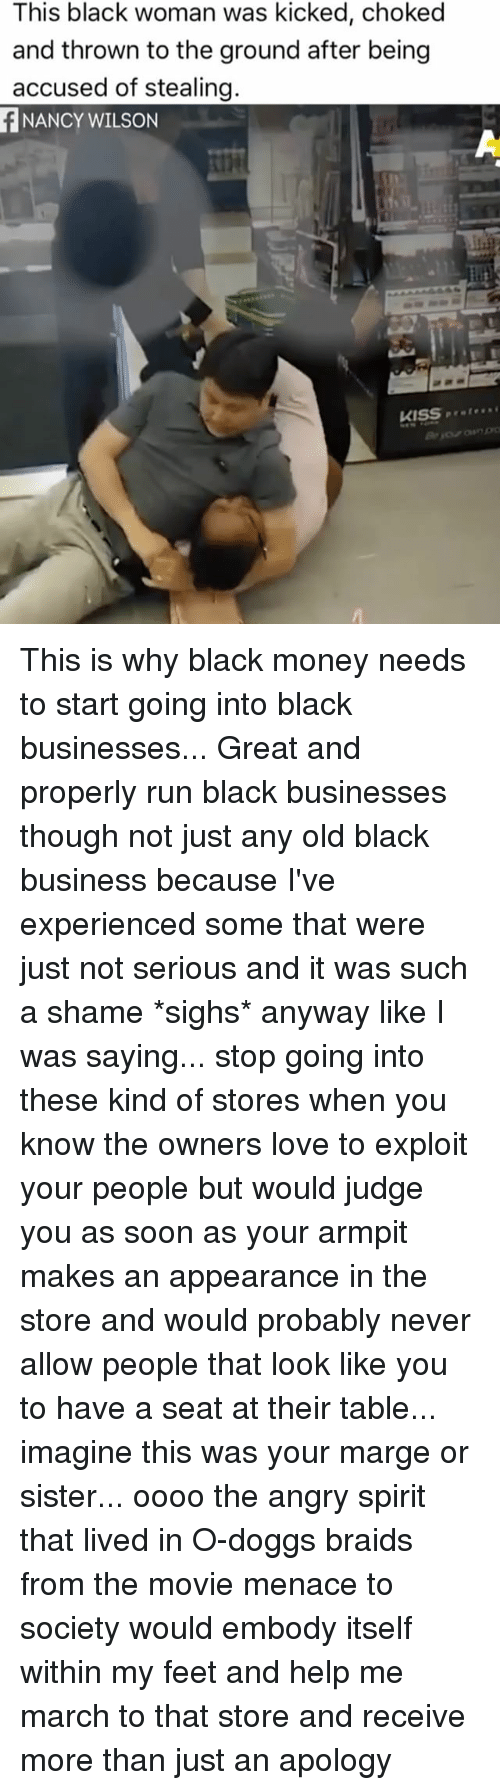 Memes, 🤖, and Feet: This black woman was kicked, choked  and thrown to the ground after being  accused of stealing.  NANCY WILSON  KISS This is why black money needs to start going into black businesses... Great and properly run black businesses though not just any old black business because I've experienced some that were just not serious and it was such a shame *sighs* anyway like I was saying... stop going into these kind of stores when you know the owners love to exploit your people but would judge you as soon as your armpit makes an appearance in the store and would probably never allow people that look like you to have a seat at their table... imagine this was your marge or sister... oooo the angry spirit that lived in O-doggs braids from the movie menace to society would embody itself within my feet and help me march to that store and receive more than just an apology